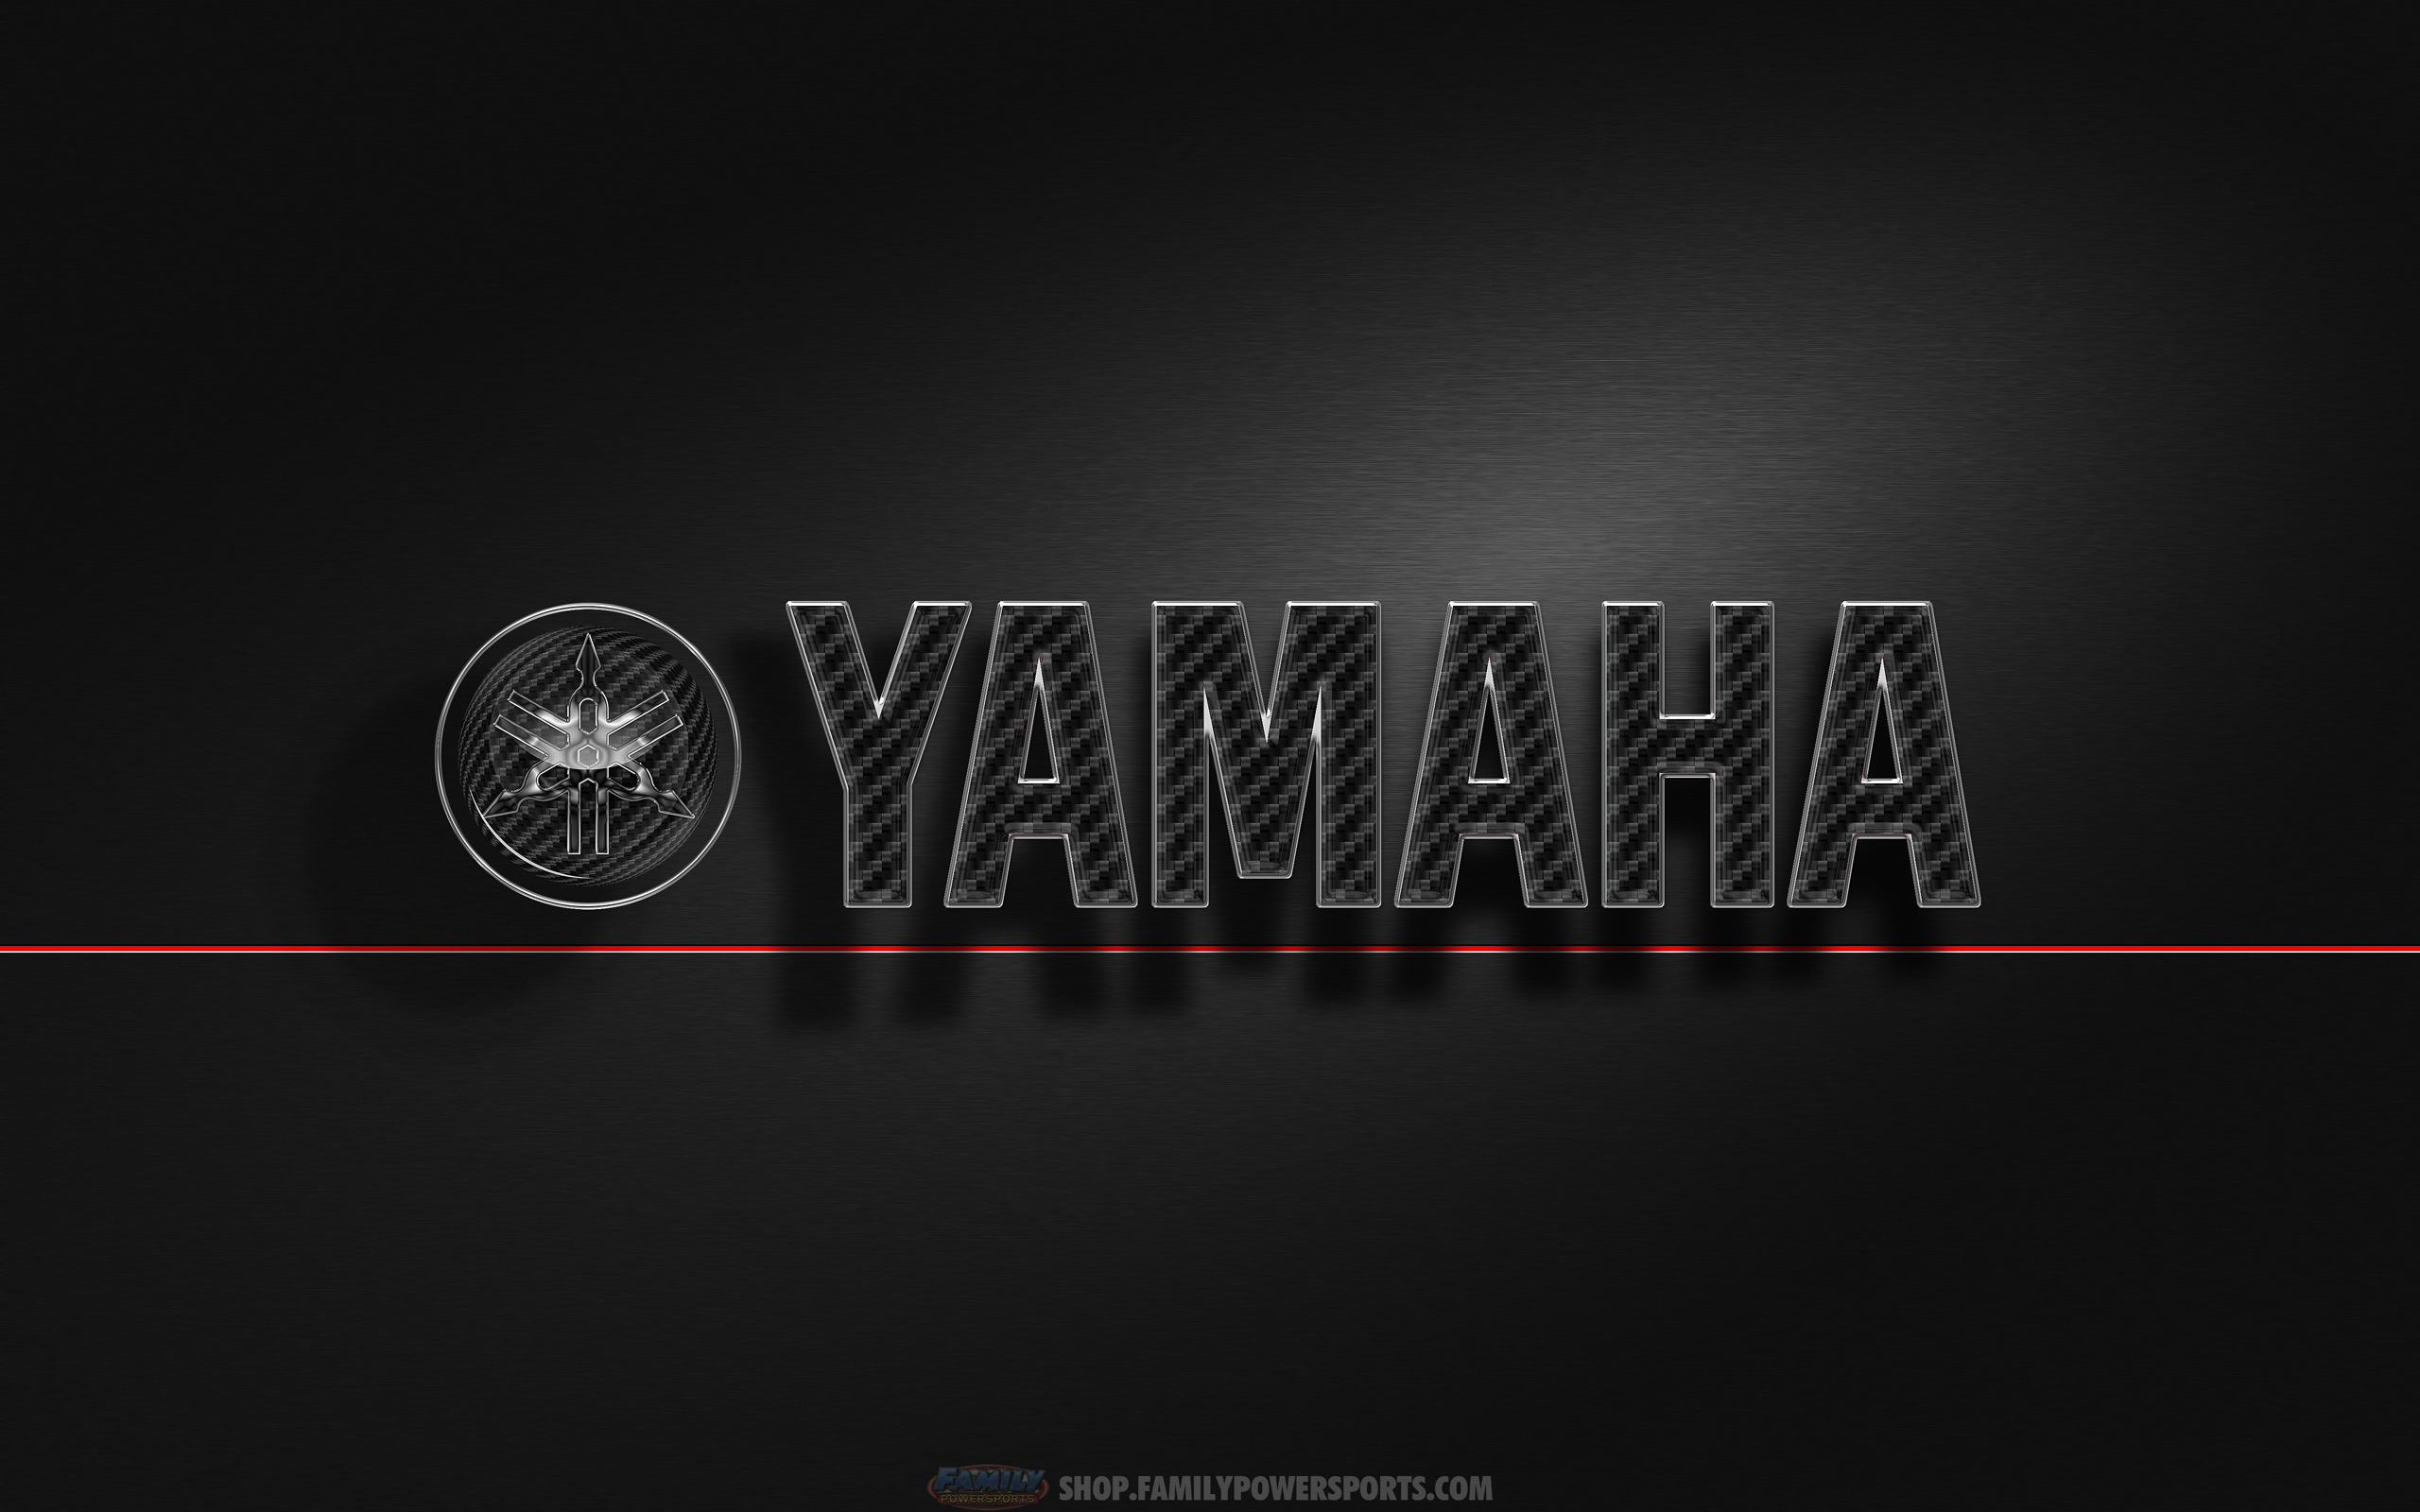 Yamaha fazer white blue images amp pictures becuo - Download Yamaha Logo Hd Wallpaper 2757 Full Size